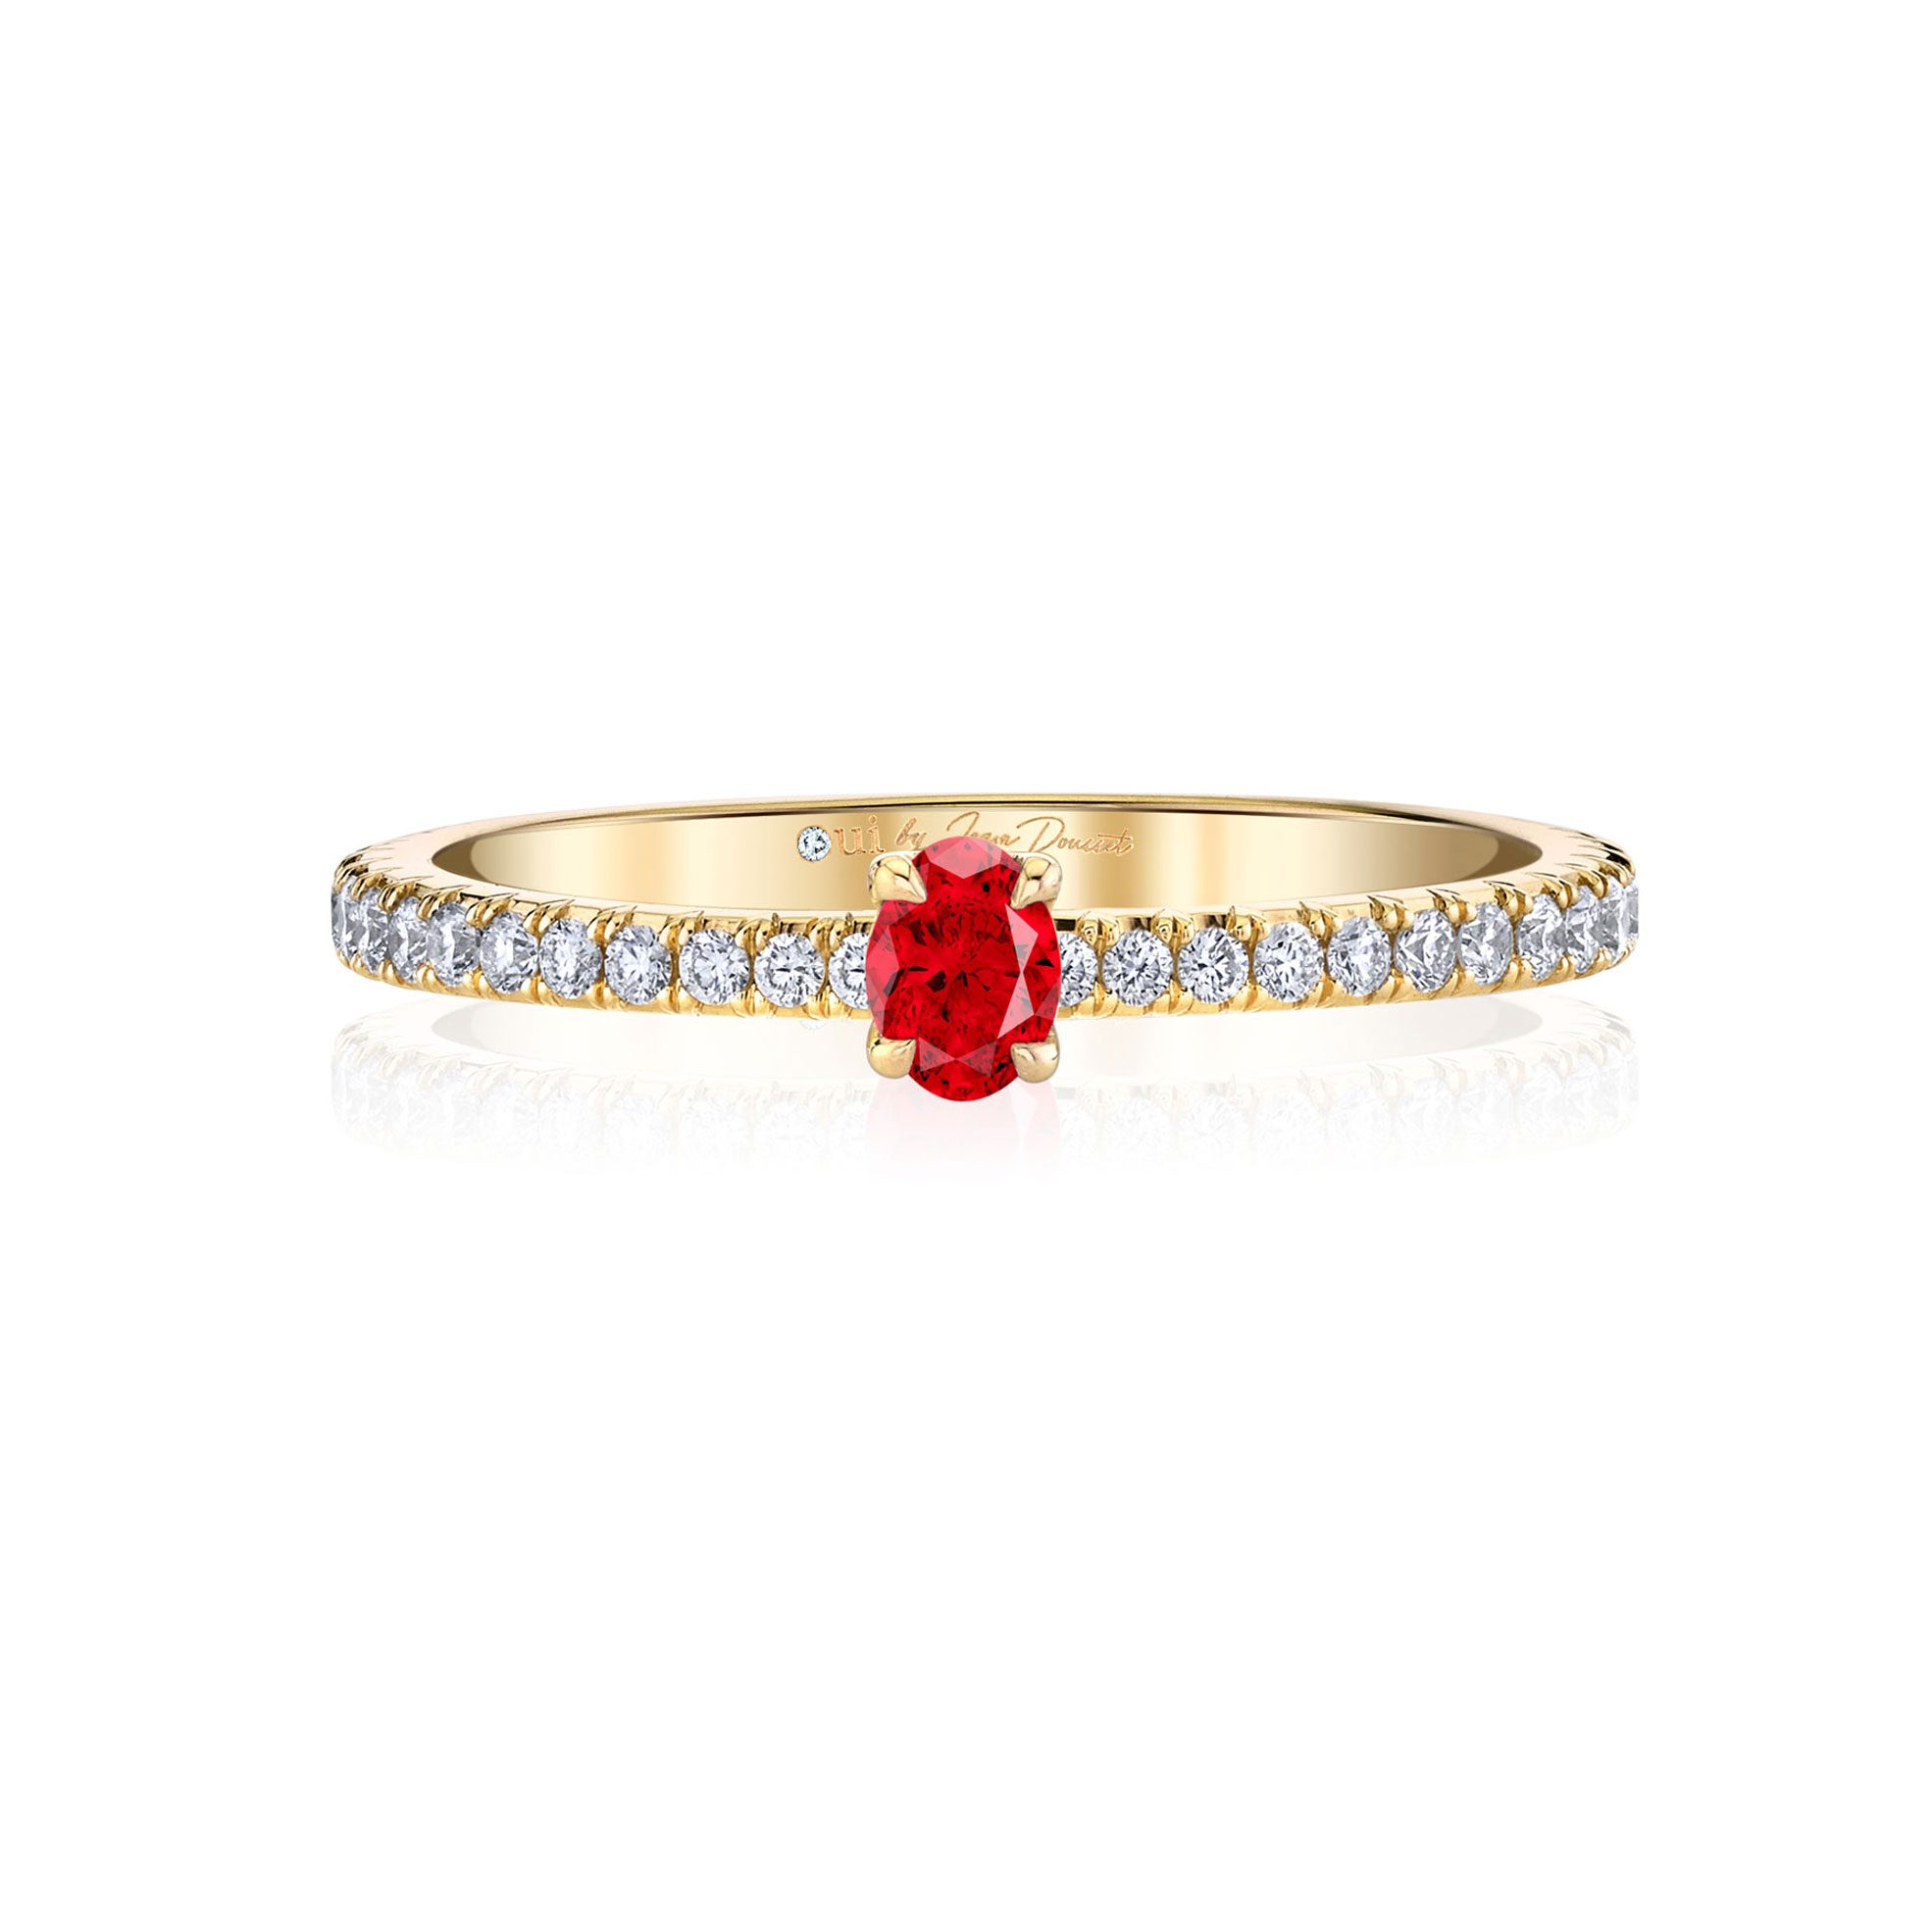 La Petite Oval Ruby Ring diamond pavé band in 18k Yellow Gold Front View by Oui by Jean Dousset